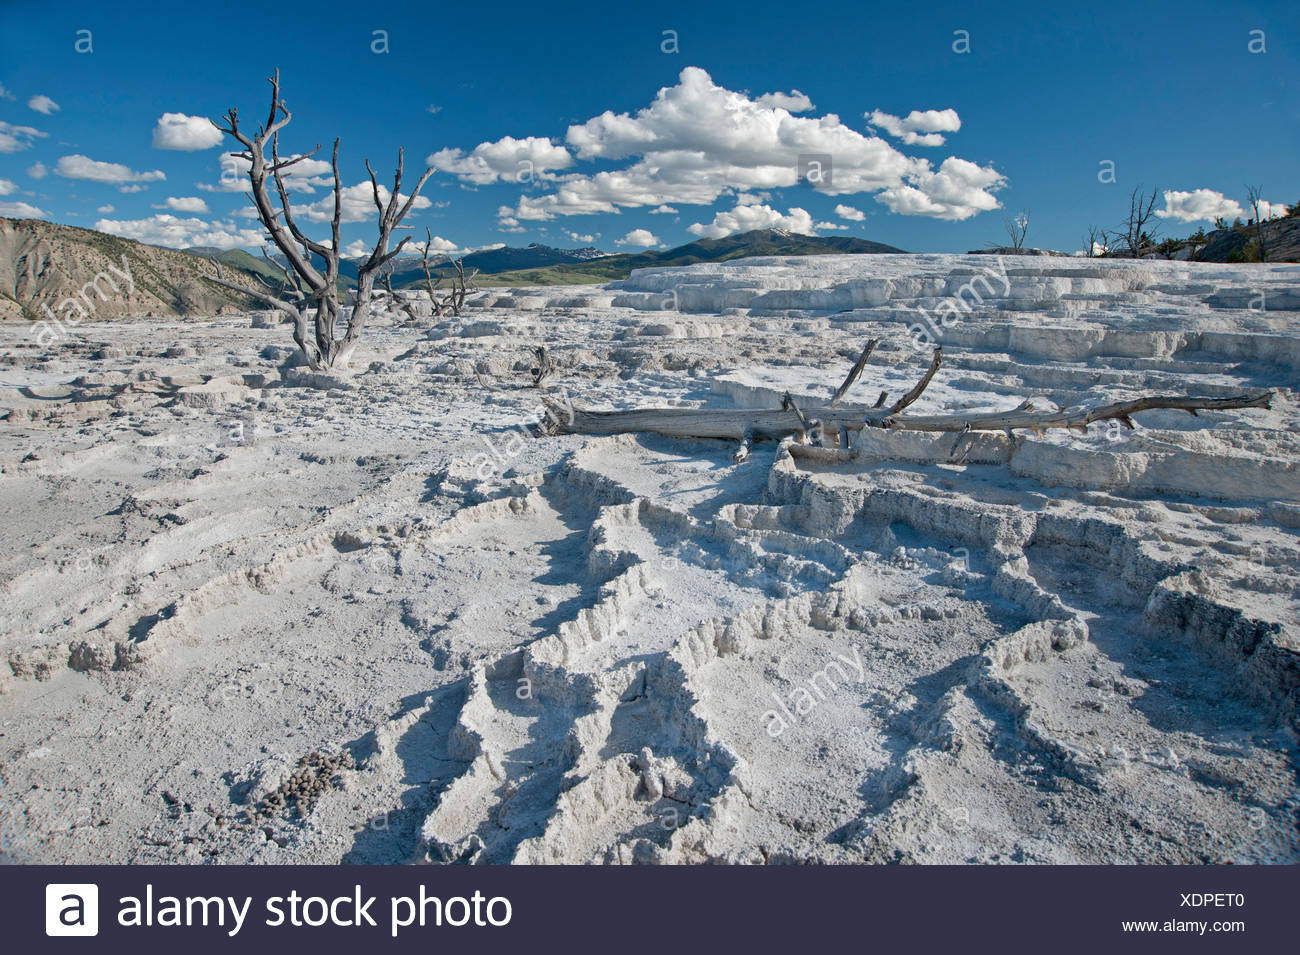 Trees killed by shifting hot water stand amidst mineral deposits. - Stock Image